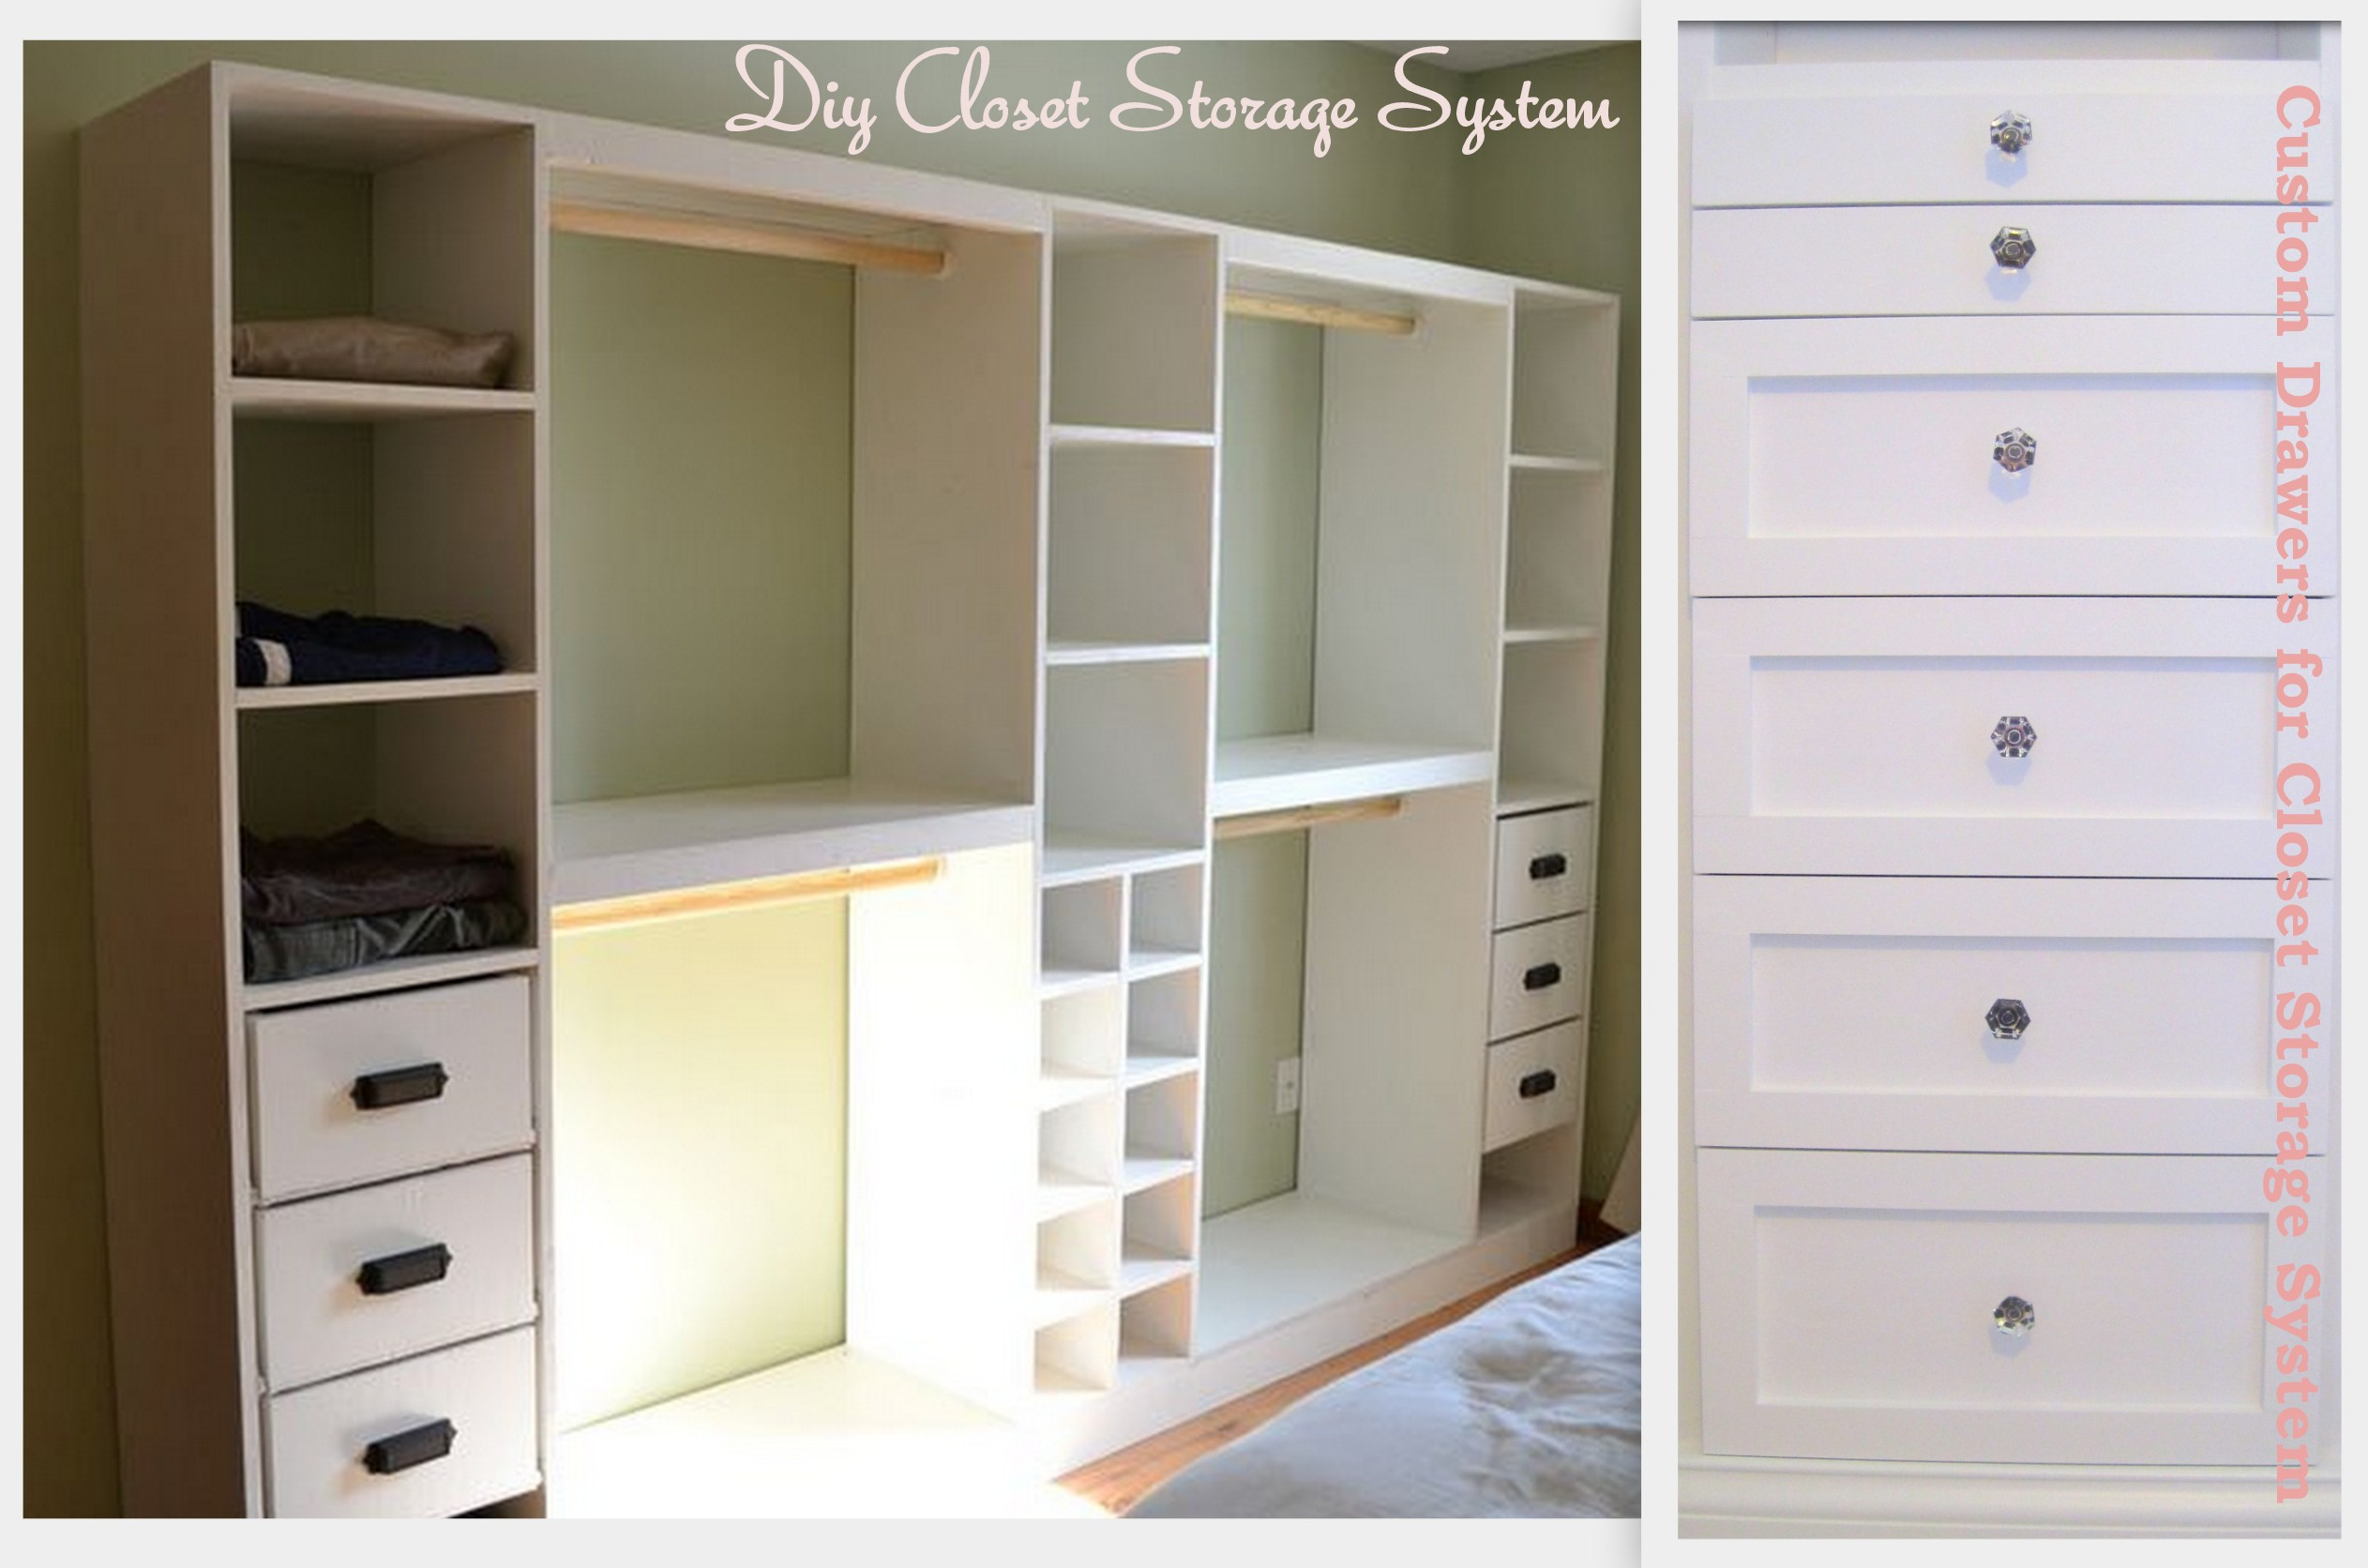 ana towers projects white the drawers in closet makeover master two photos diy additional